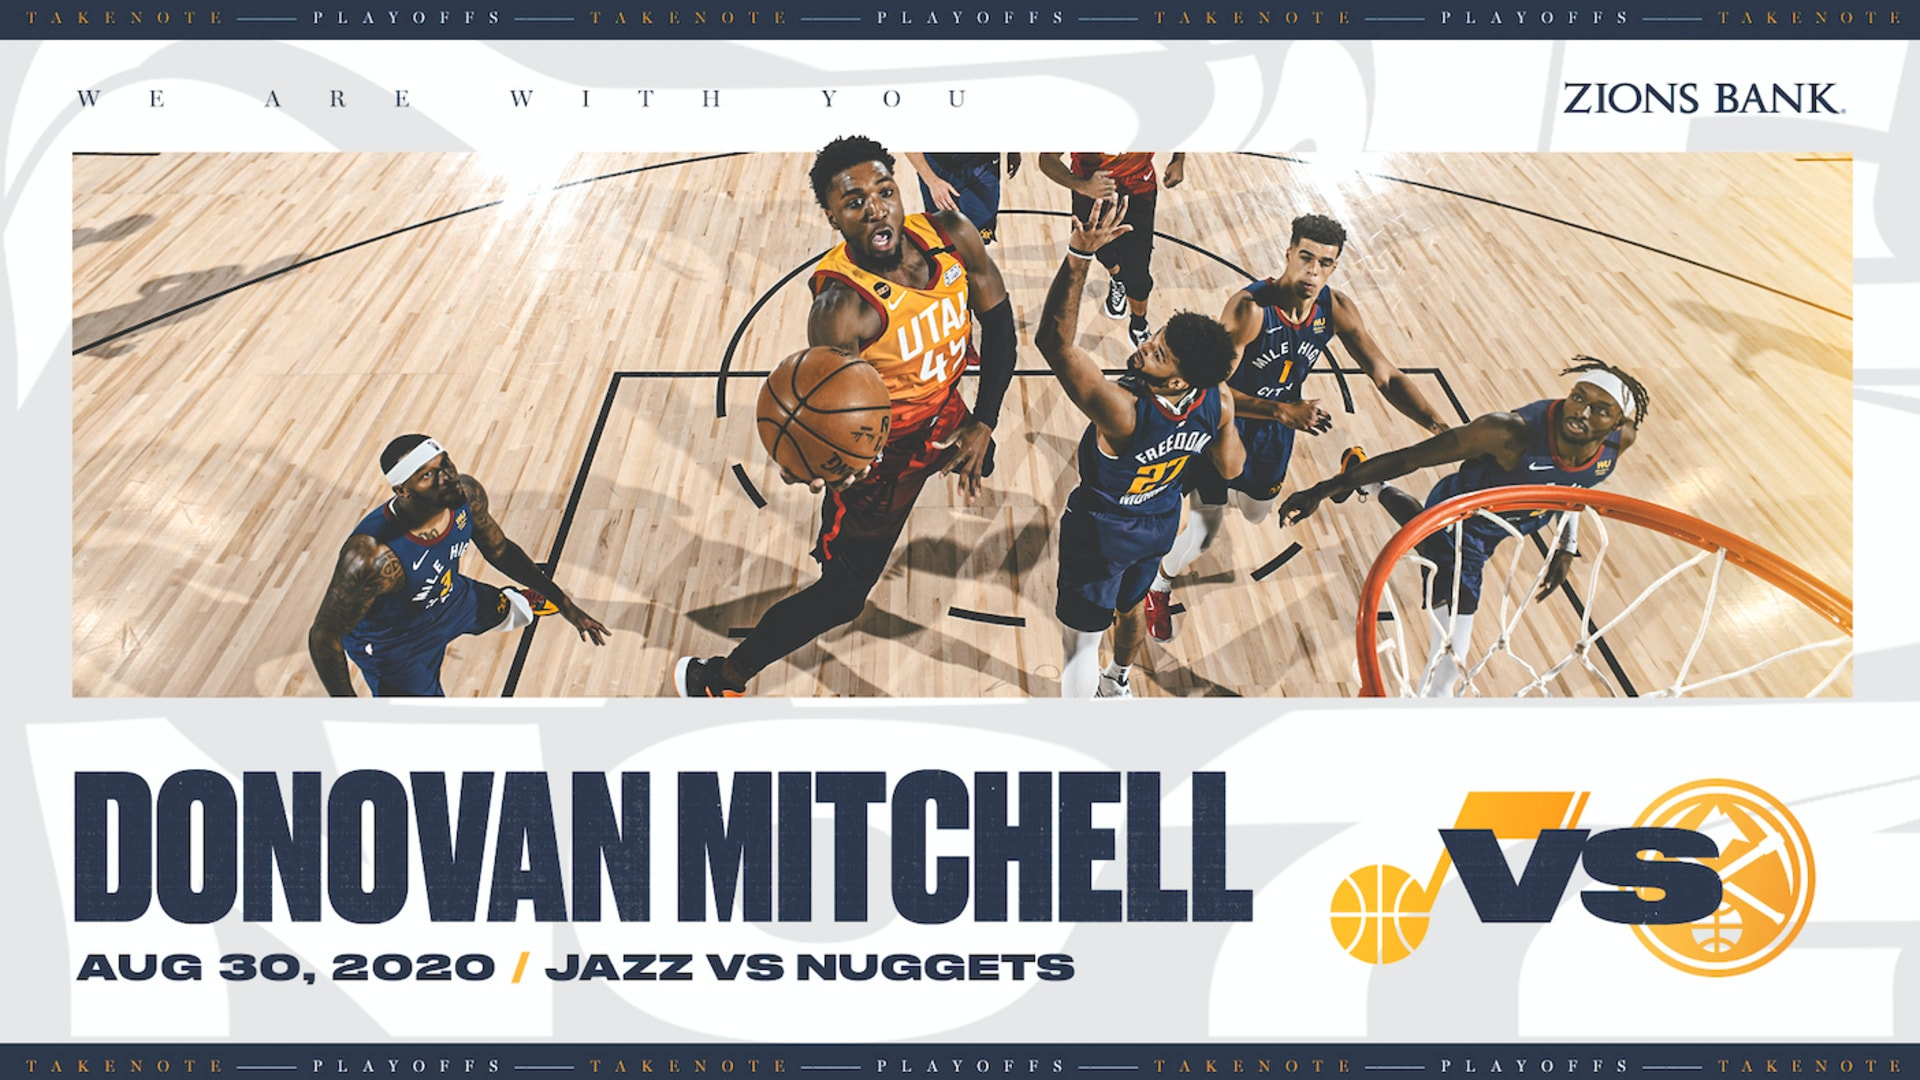 Highlights: Donovan Mitchell — 44 points, 9 3-pointers